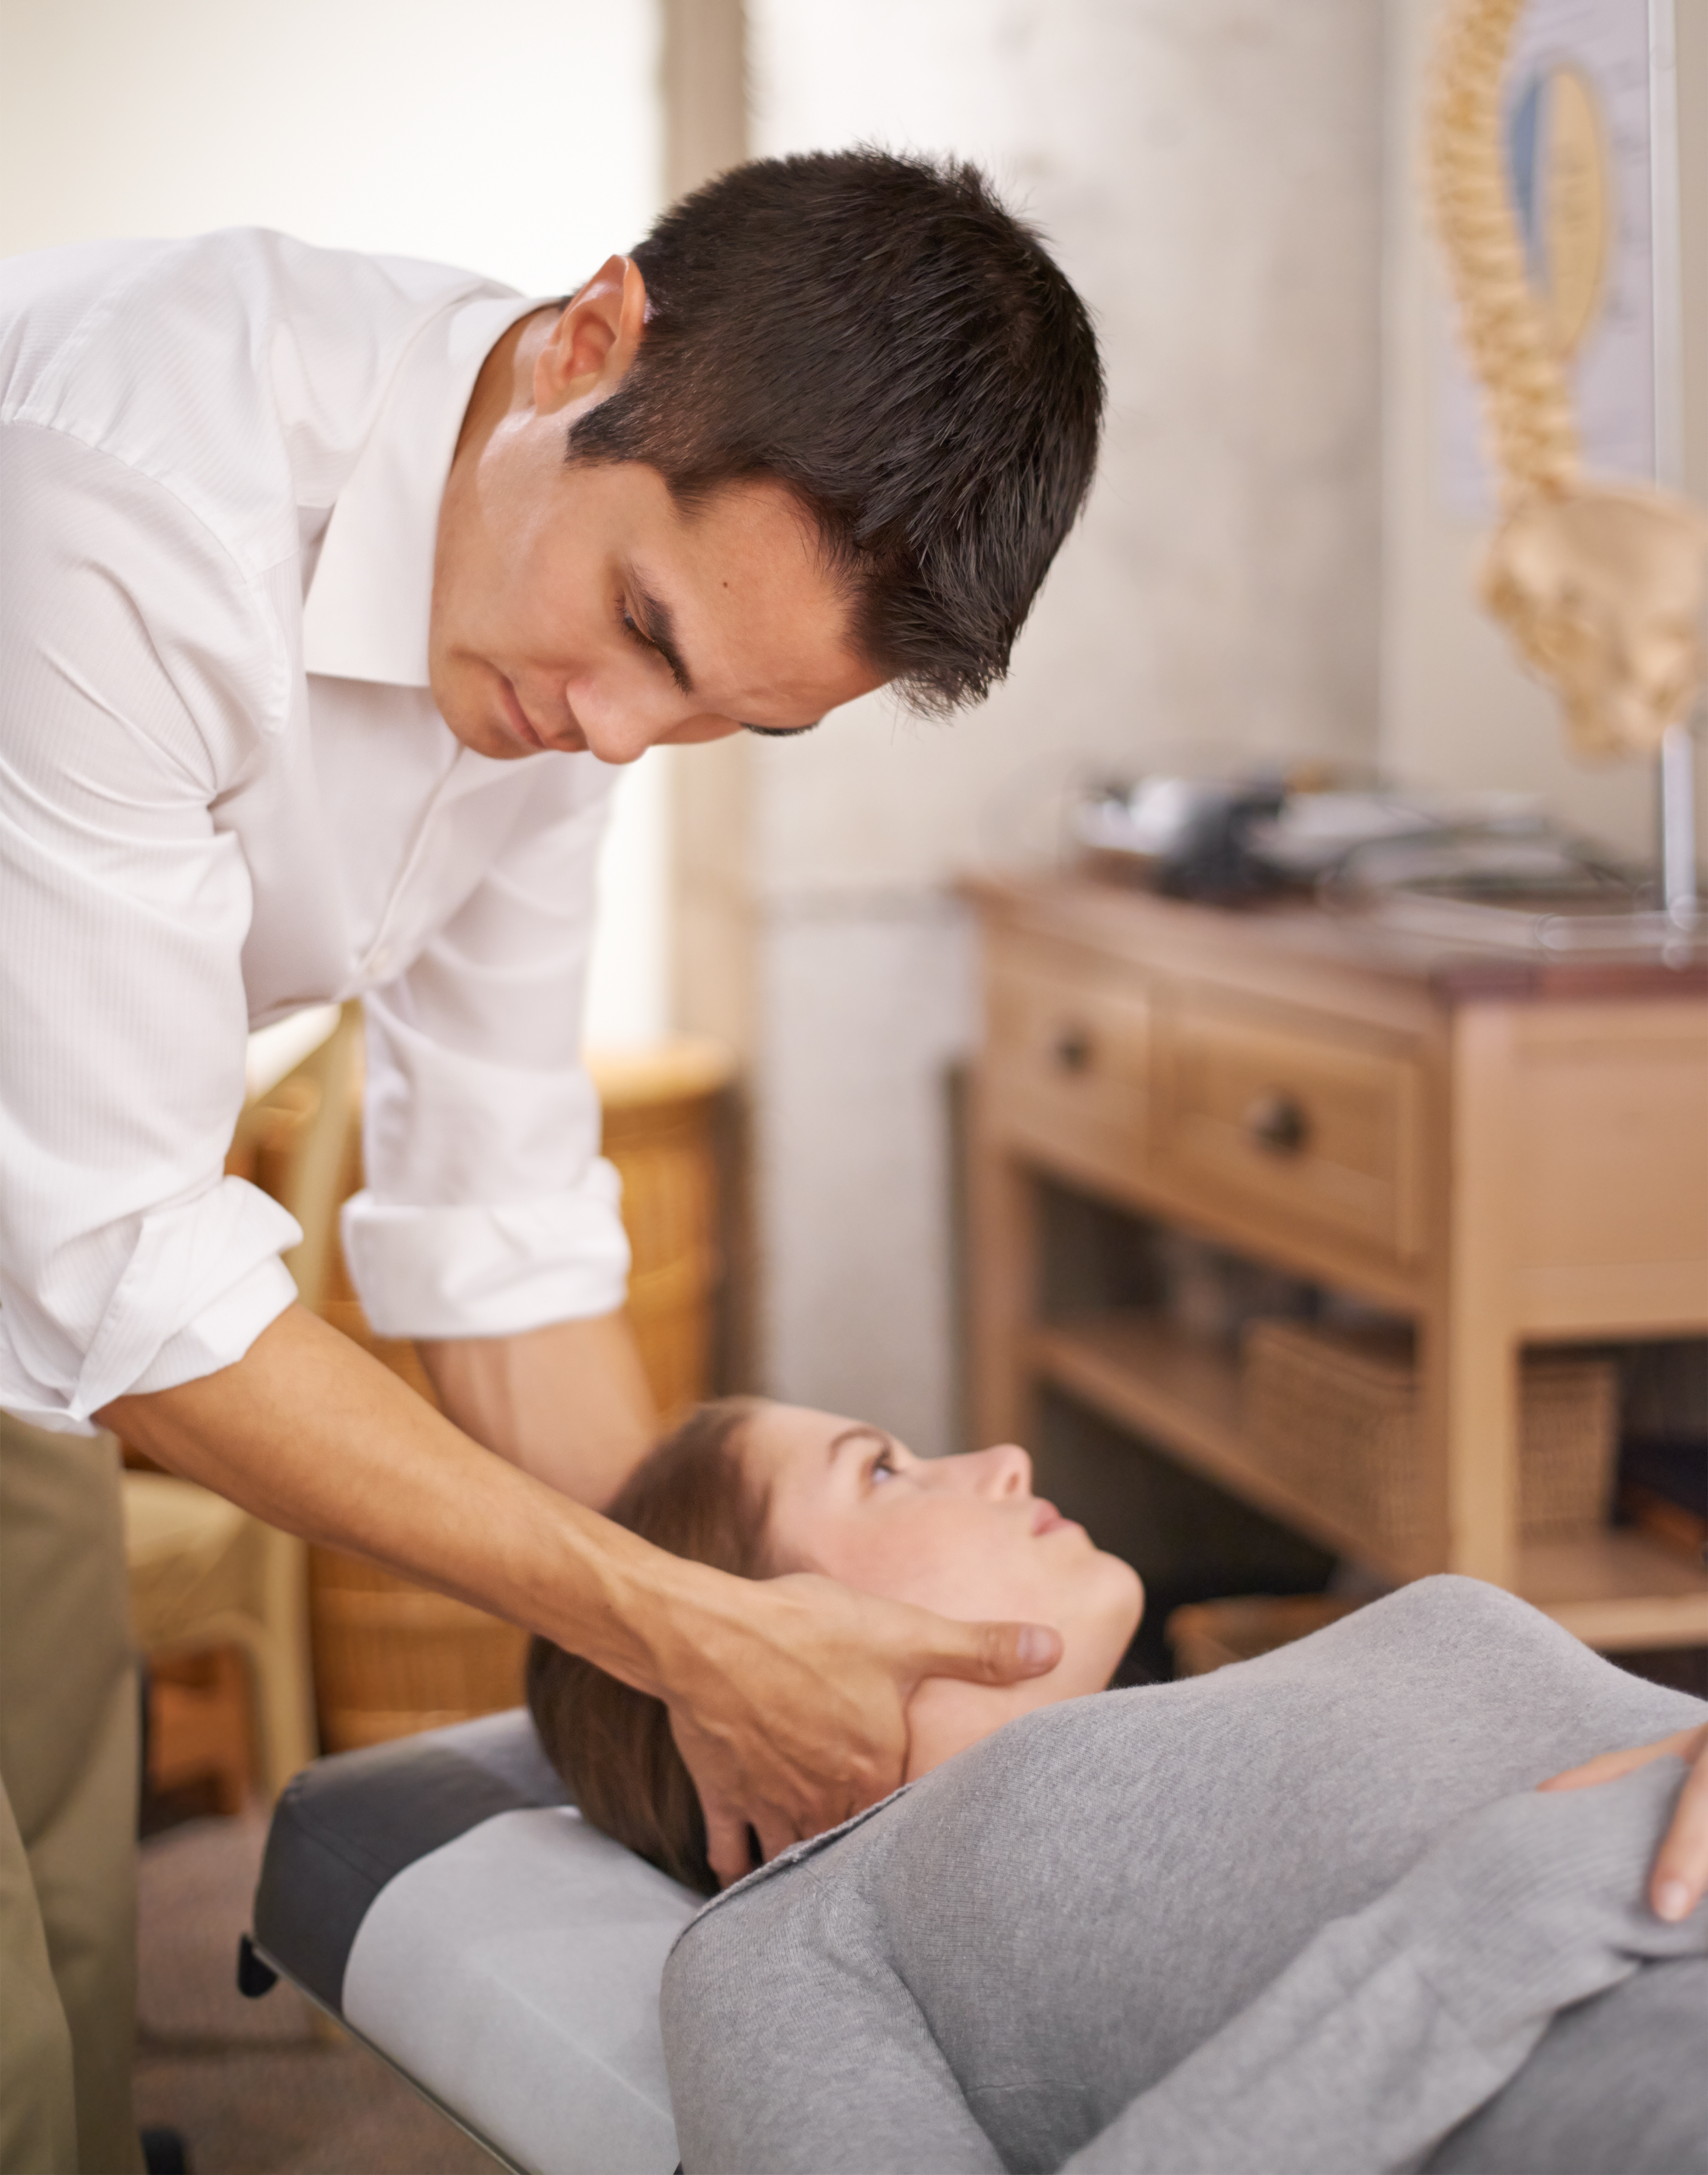 When Should I See a Chiropractor about Neck Pain?